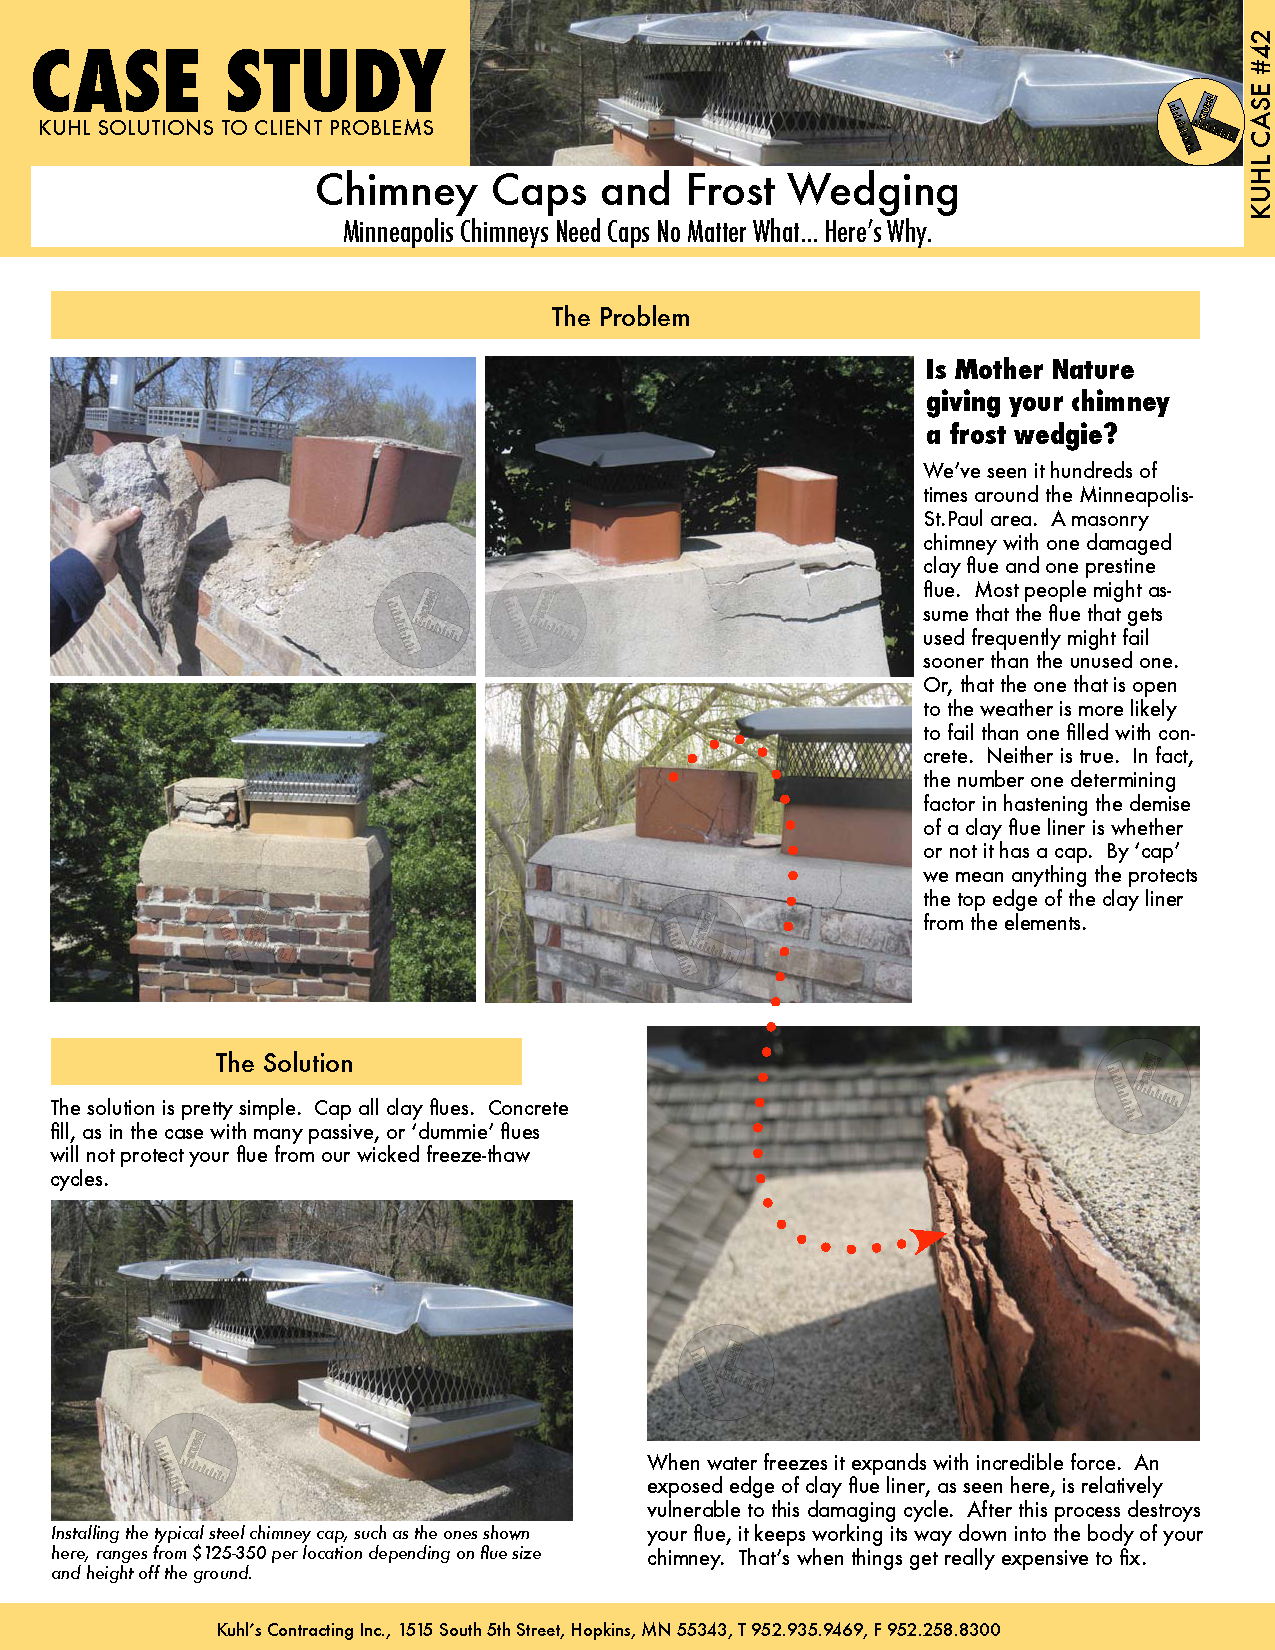 Chimney Caps & Frost Wedging: Minneapolis Chimney Repair Tips